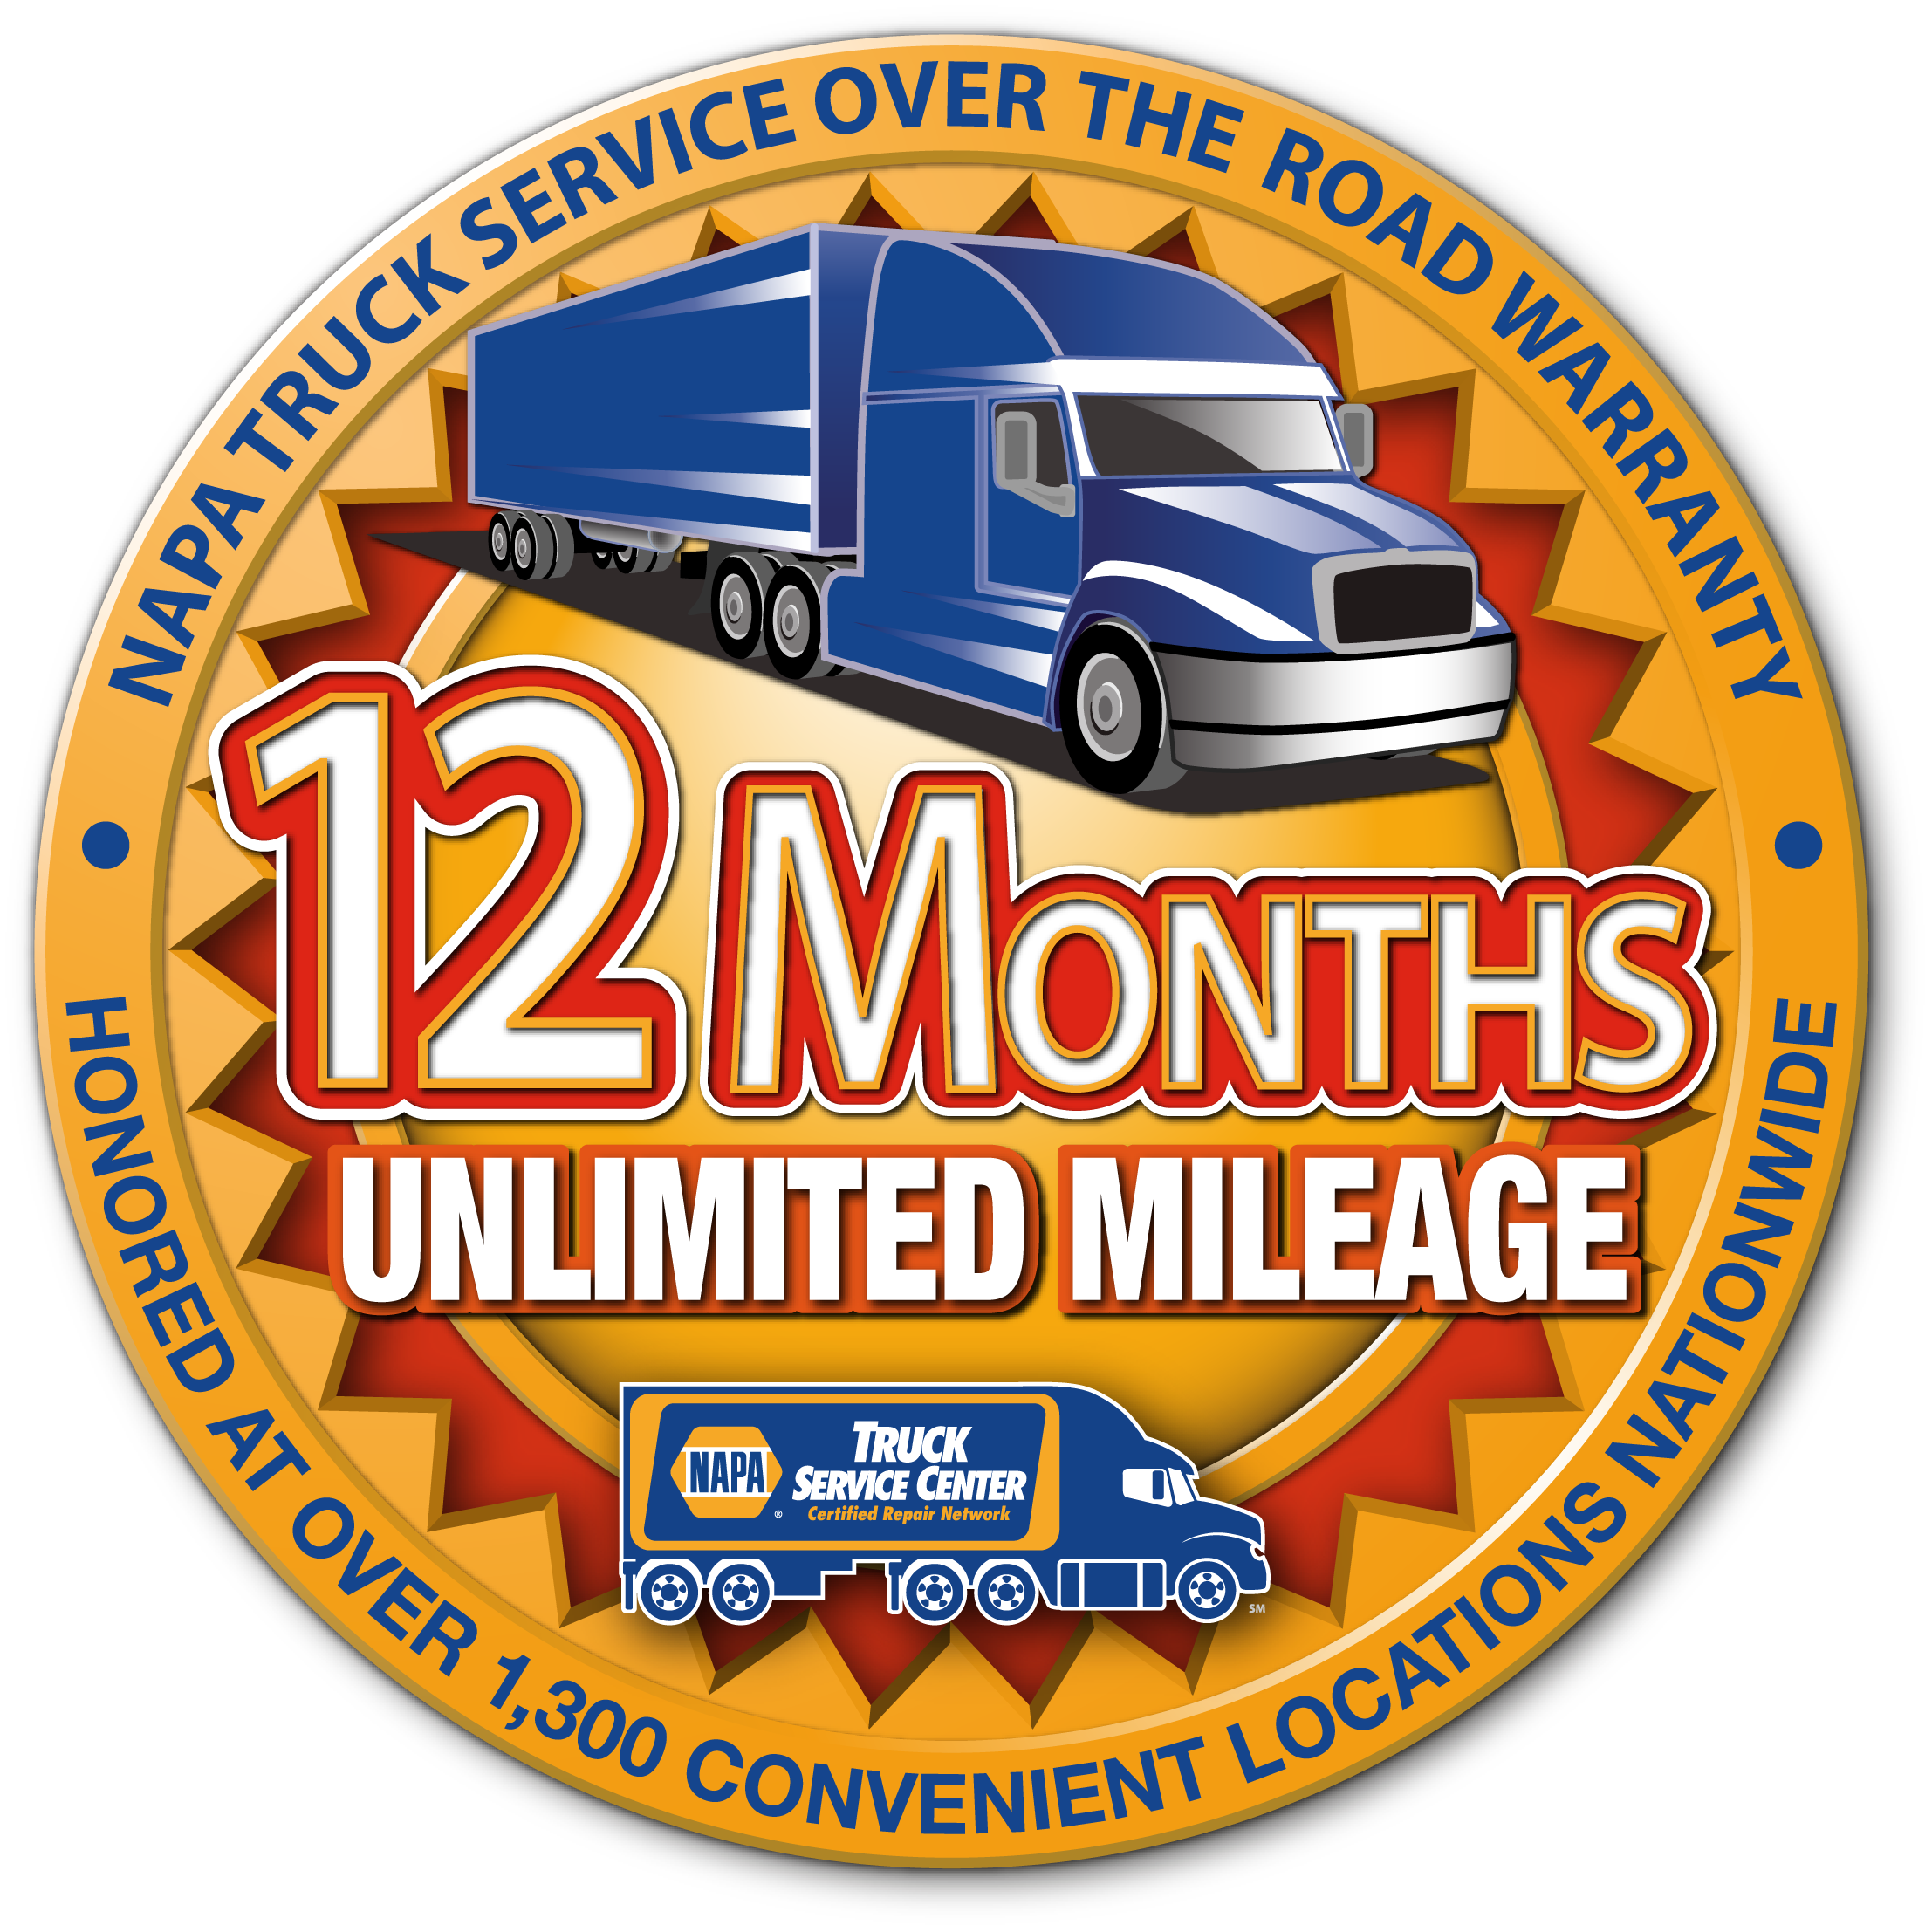 Covers Parts and Labor on Qualifying Repairs and Services for 12 months  with unlimited mileage. - Warranty HD PNG